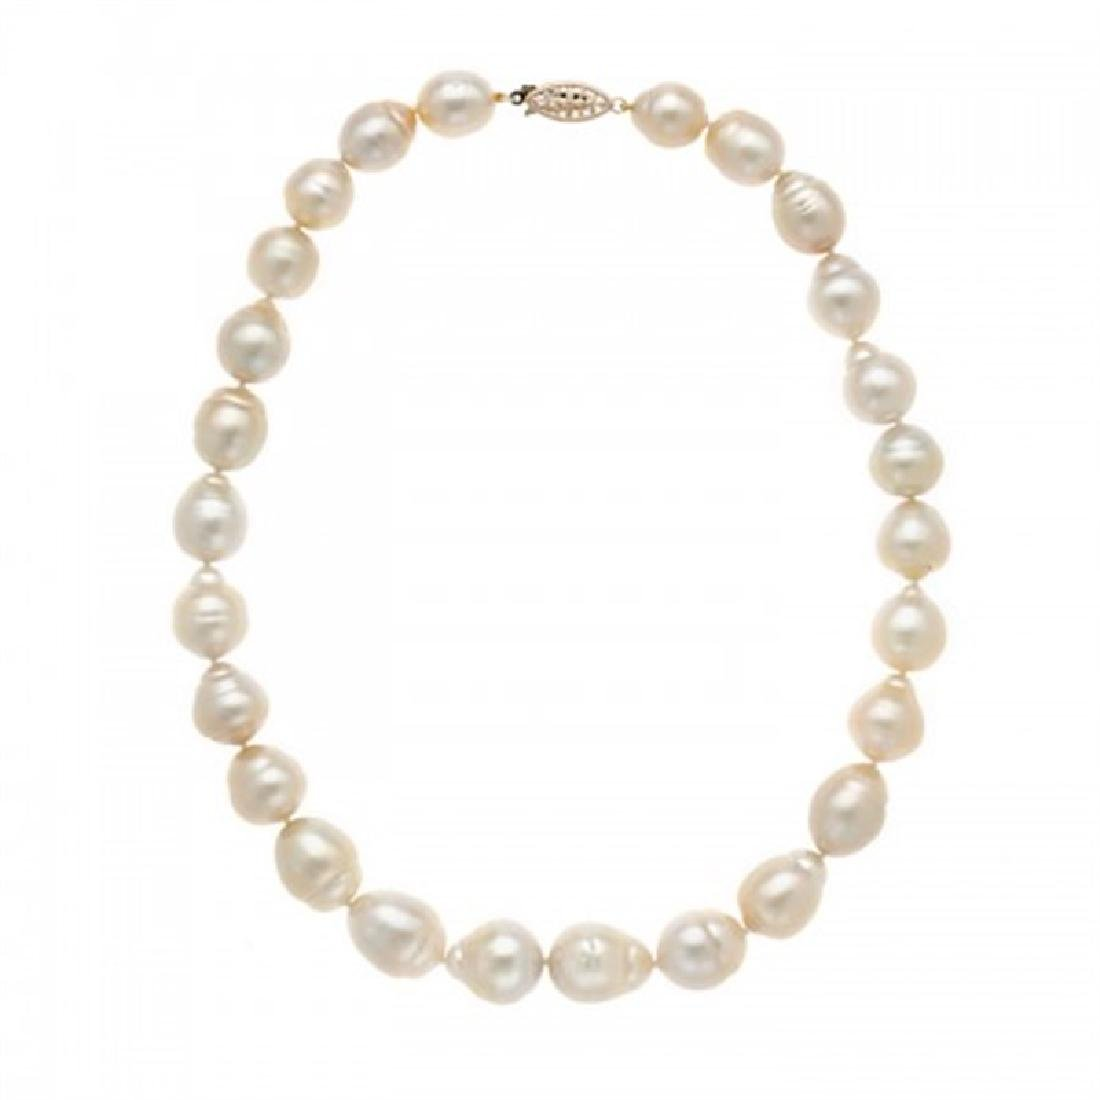 11.5-14.5mm Golden South Sea Pearl Necklace